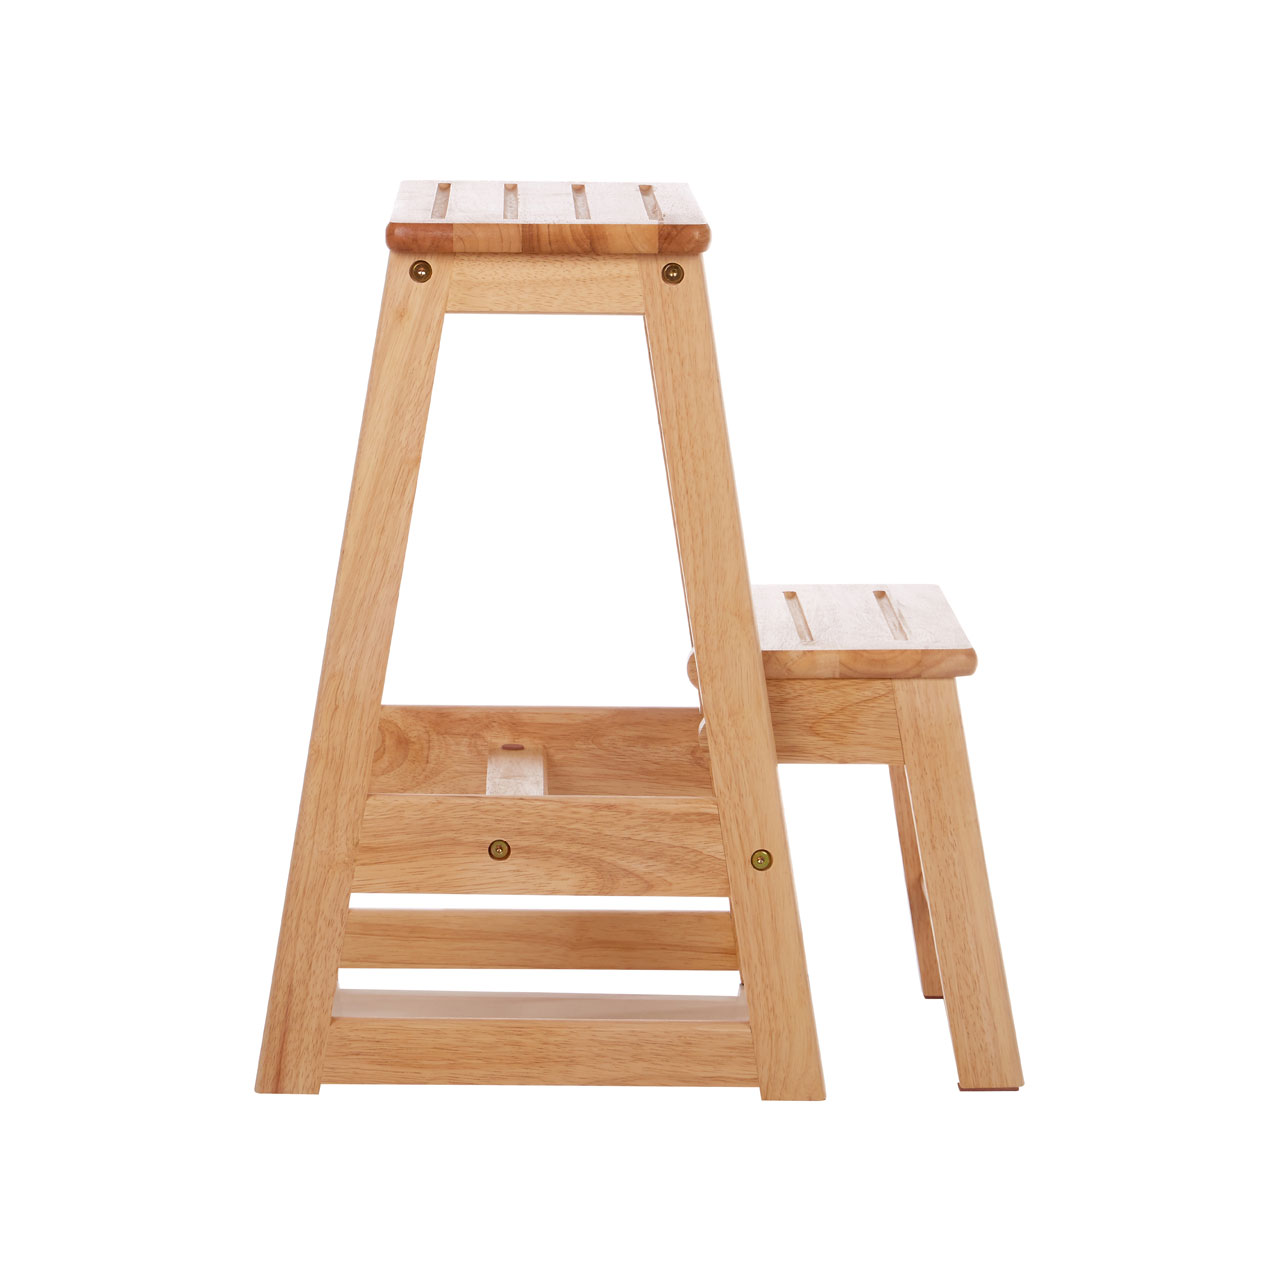 Details About Two Step Stool Tropical Hevea Wood Kitchen Ladder Foldable